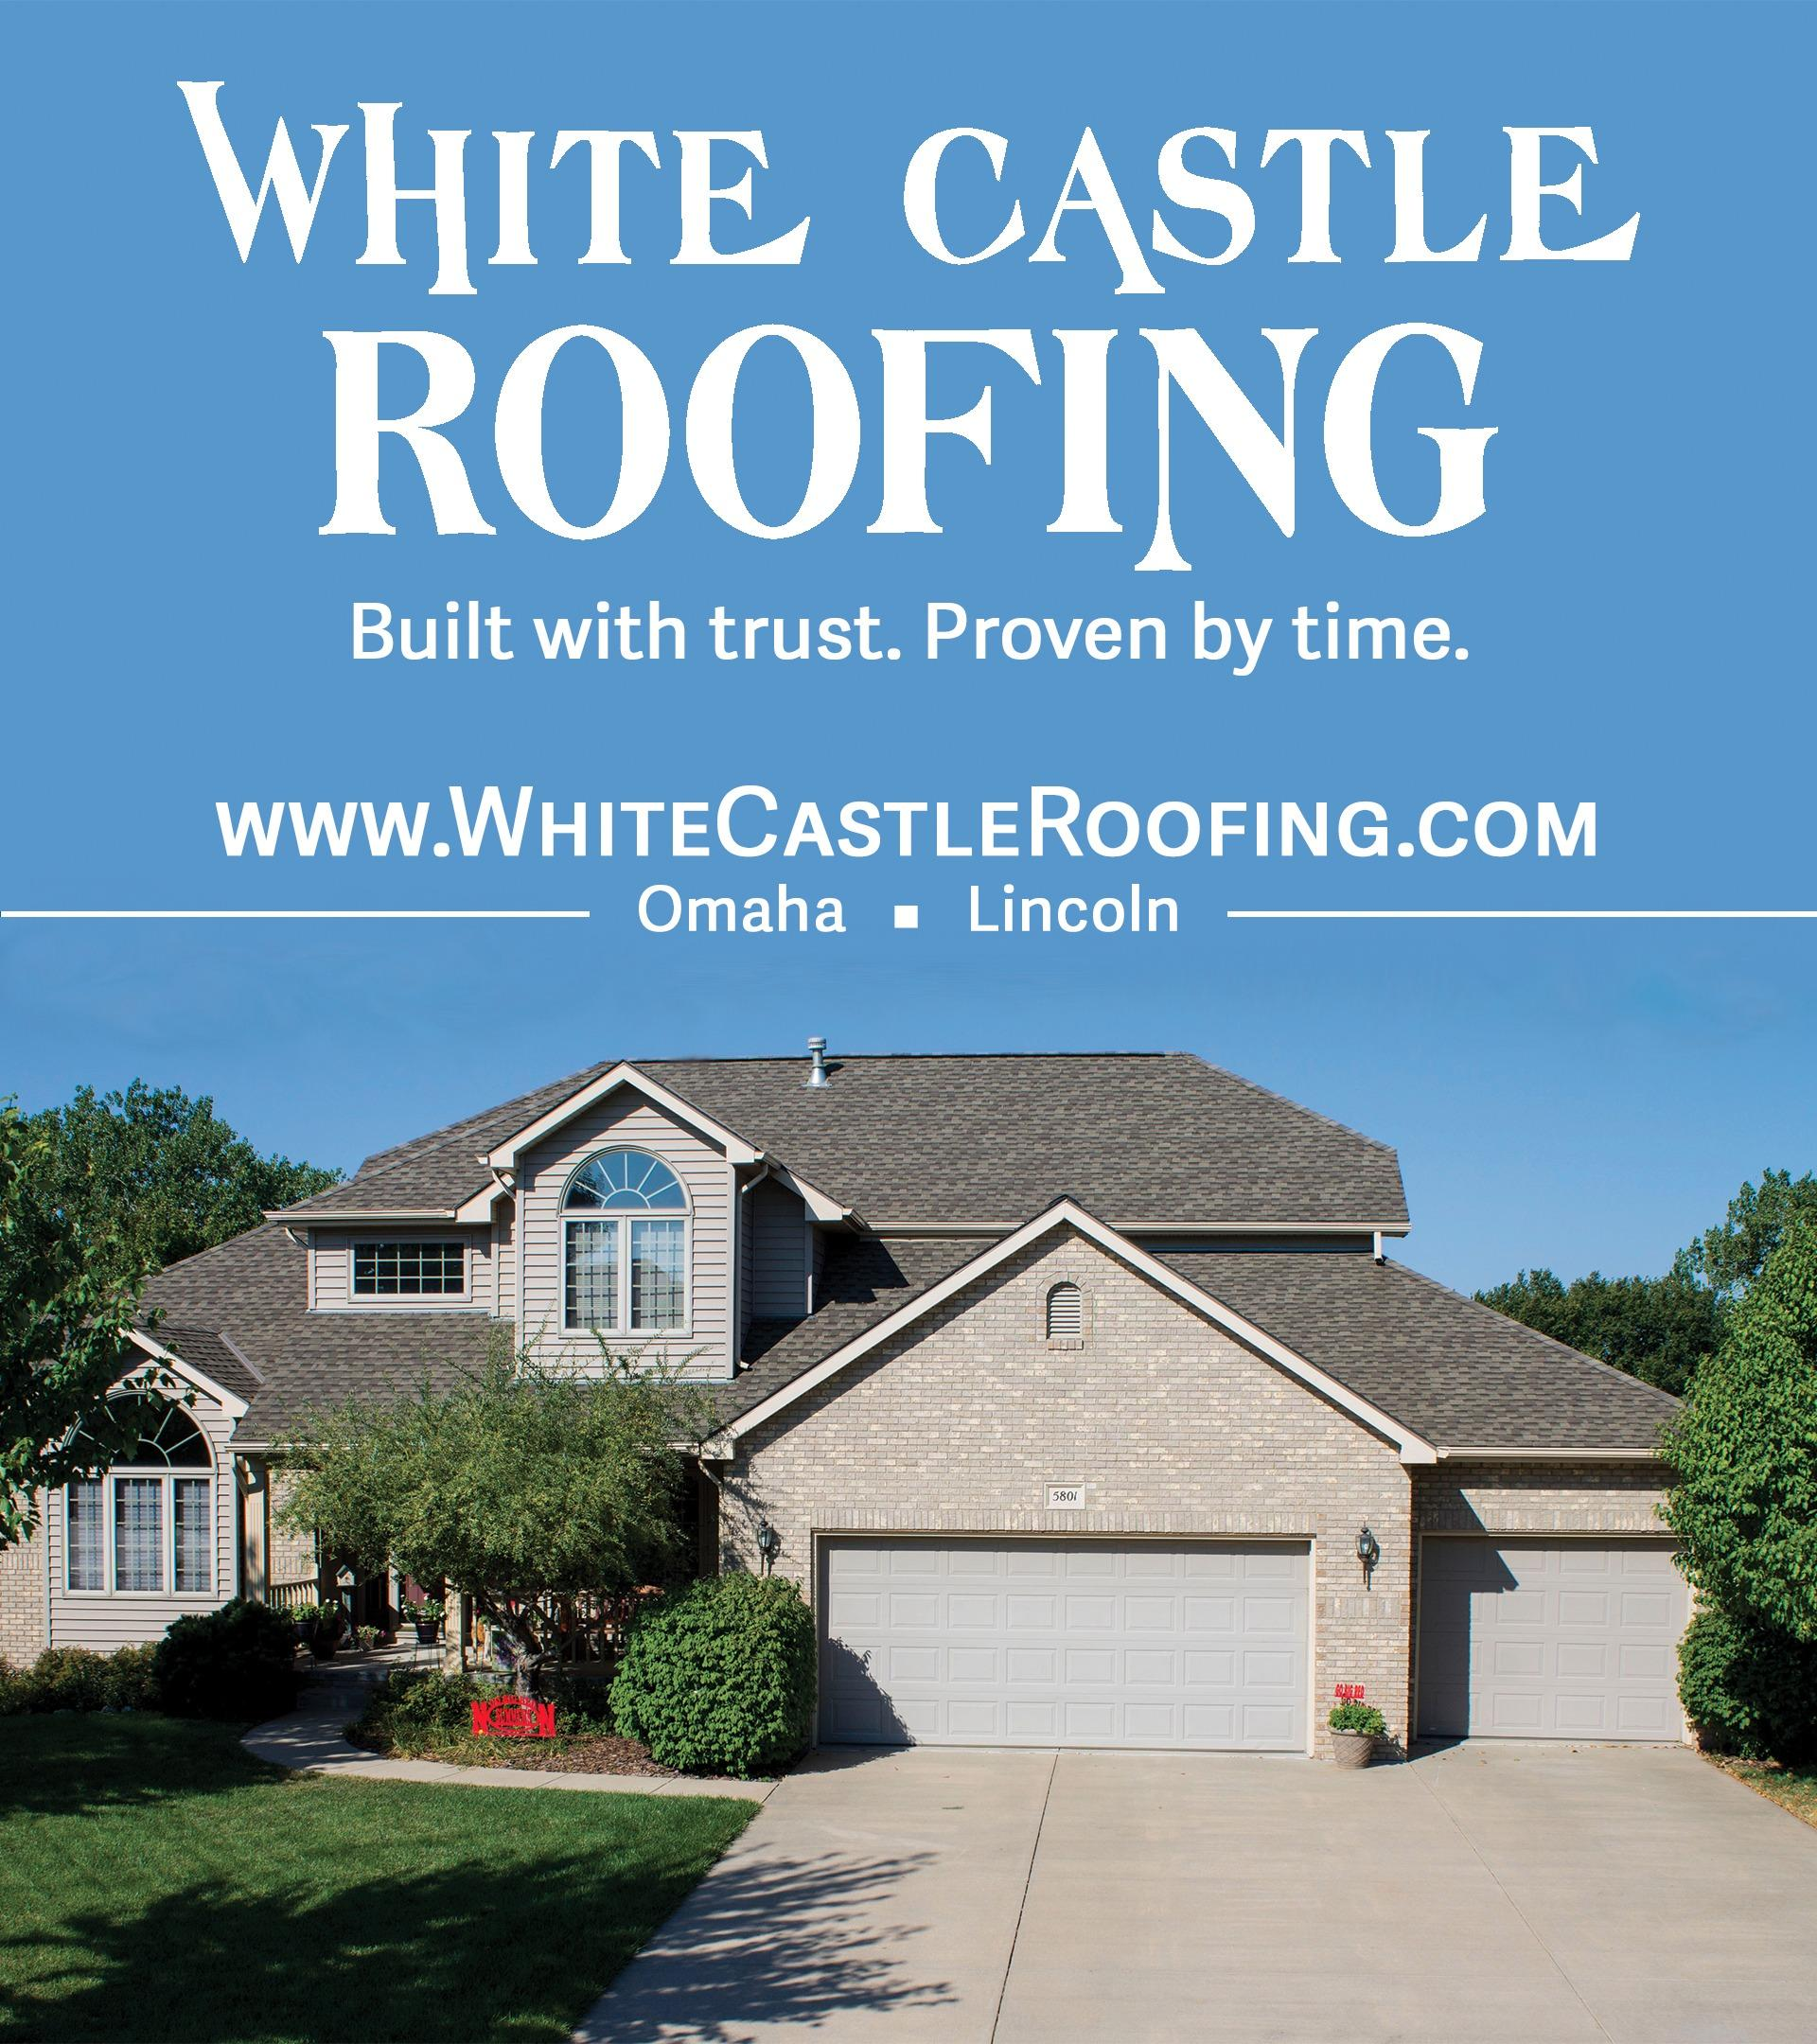 White Castle Roofing In Lincoln Ne 68502